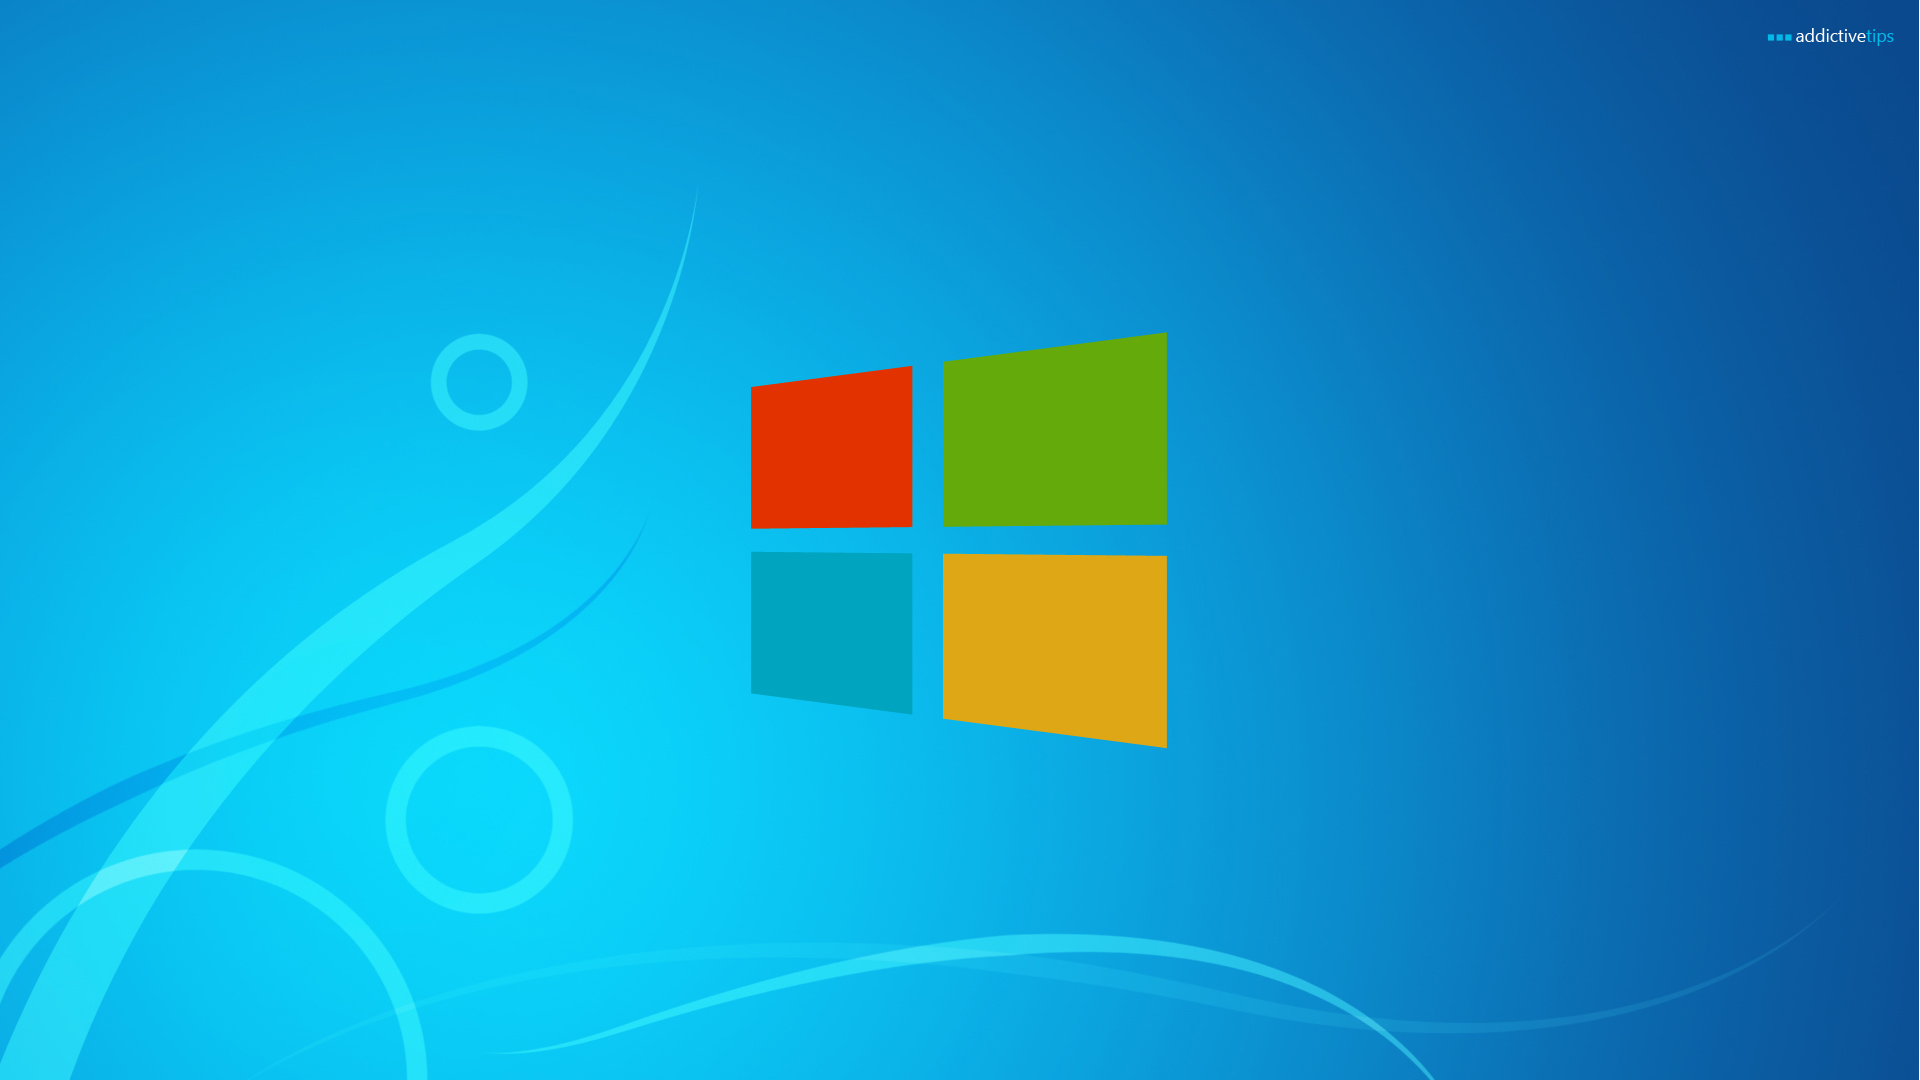 Windows 8 Wallpaper Windows 7 Spinoff White 2 1jpg 1920x1080